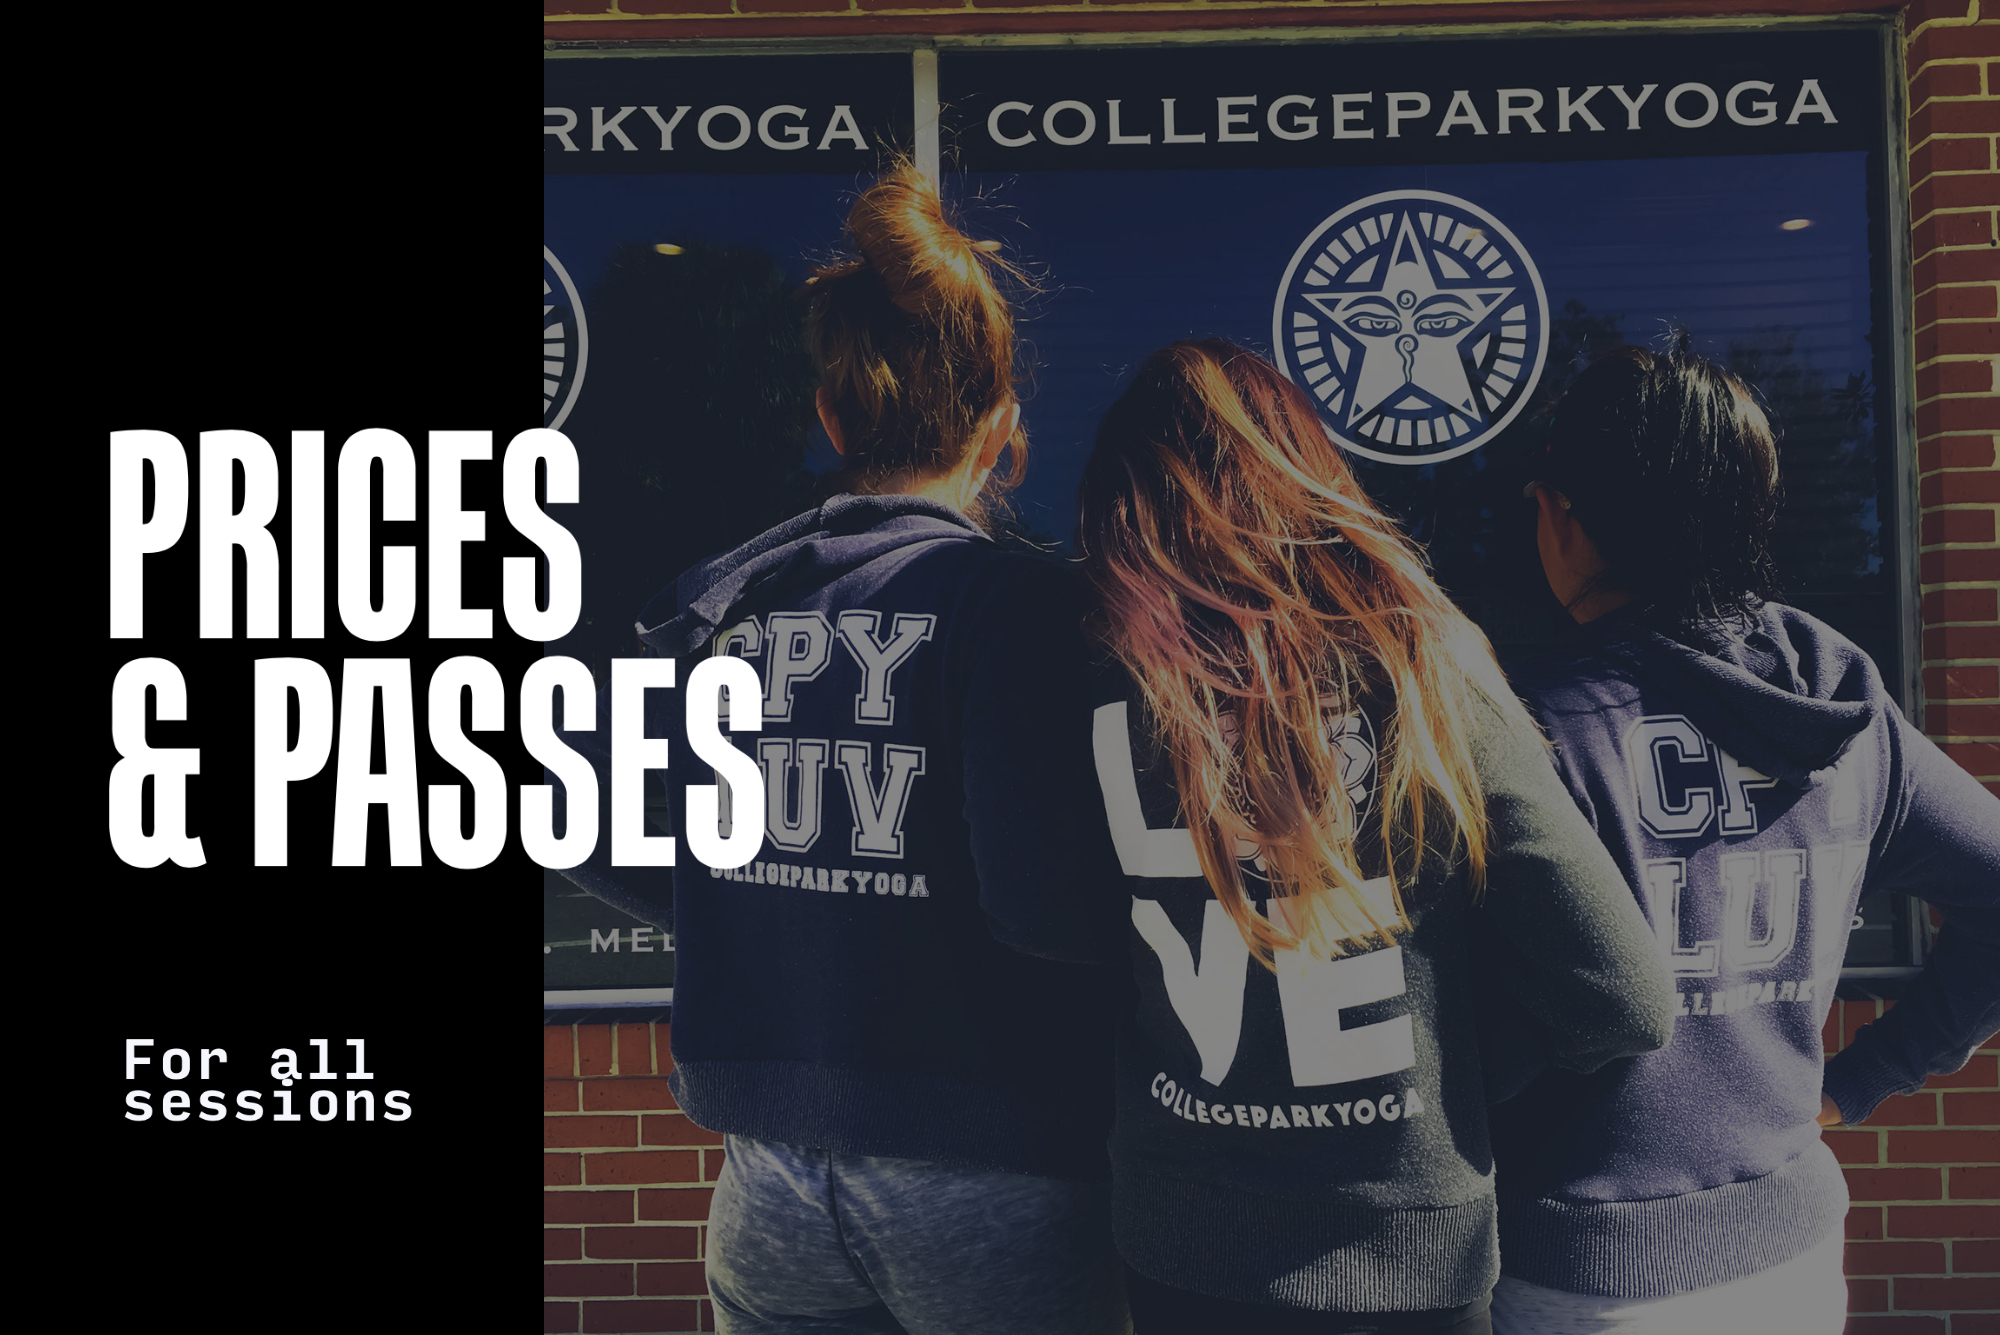 Live-stream college park yoga classes with Theresa & Calvin!